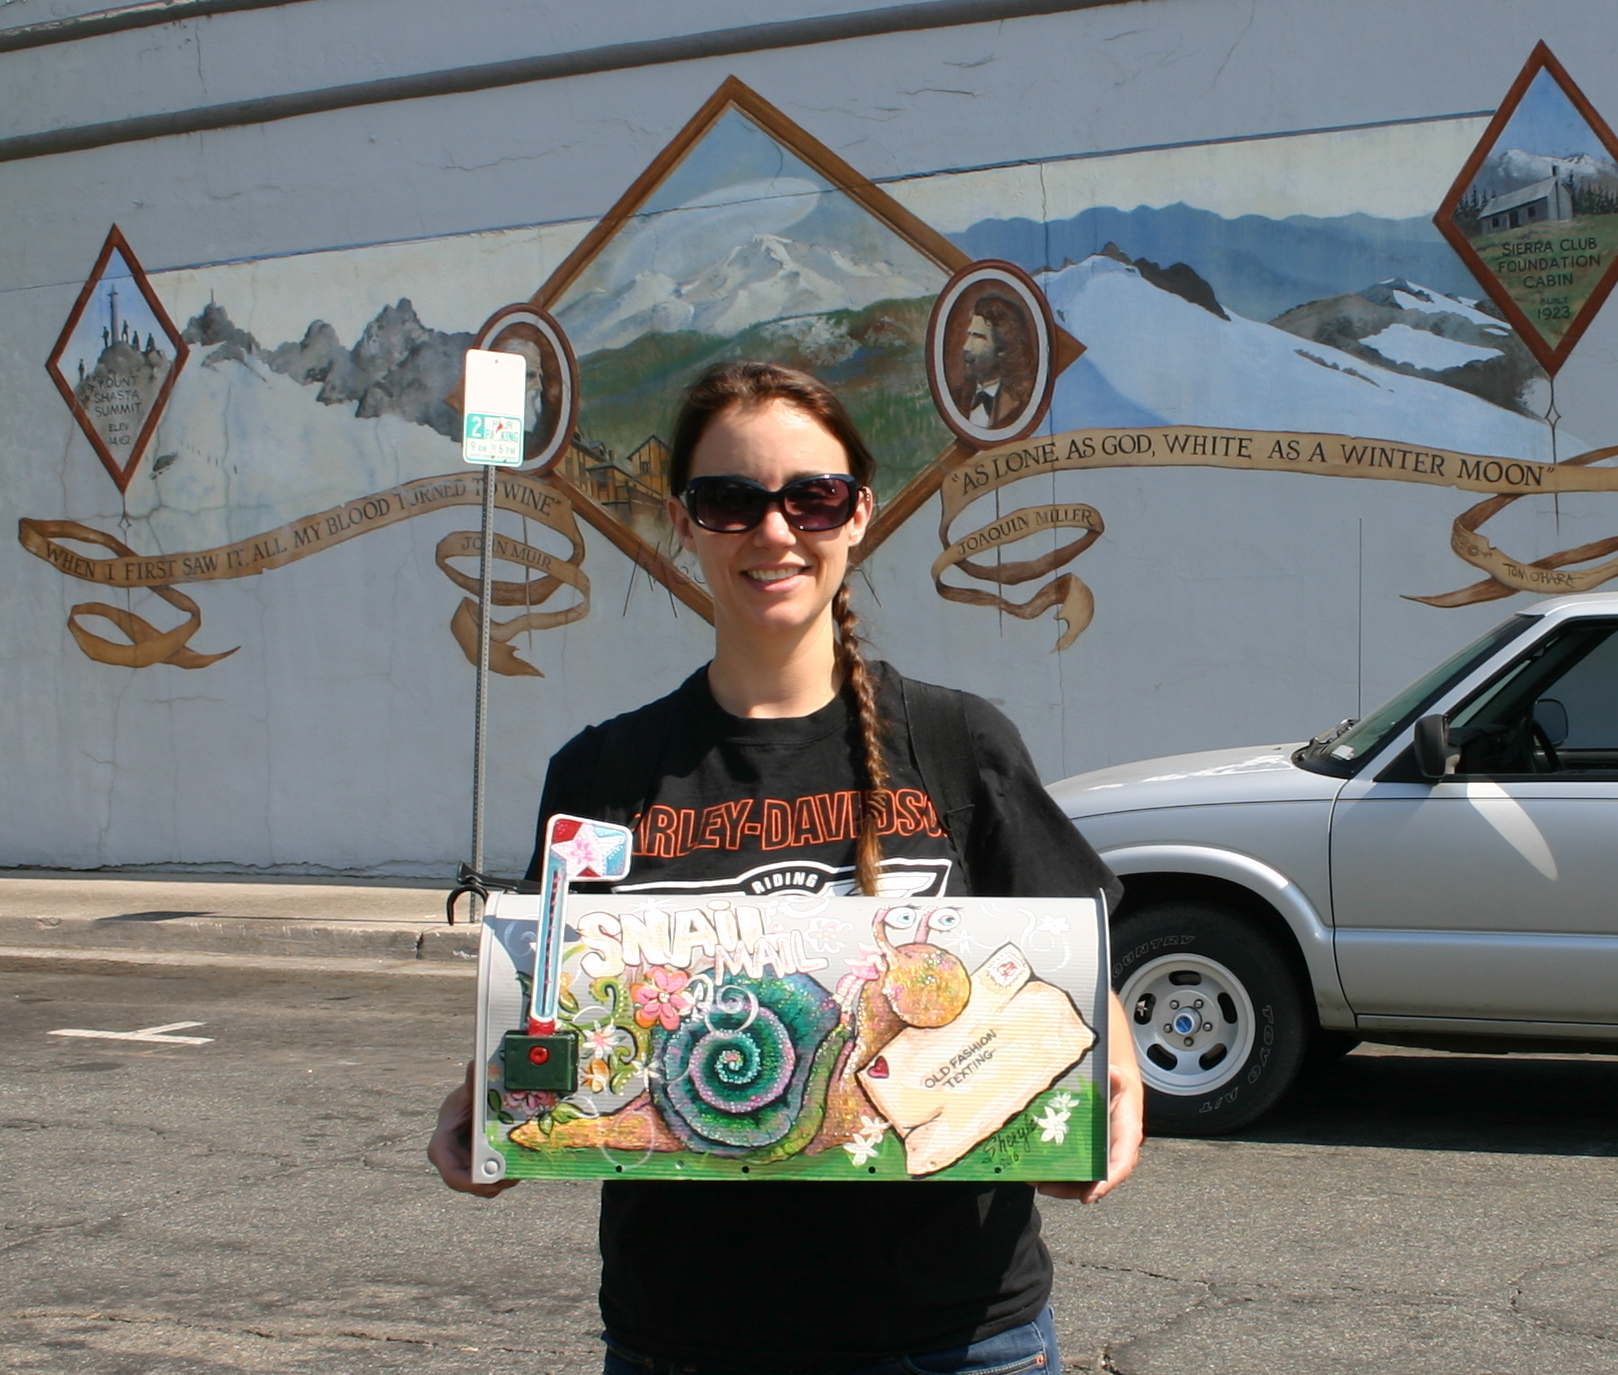 Mandy Bedell from Spokane Washington was picked for the winner of a one of a kind Mail Box. The Snail Mail Mailbox was the art creation of Sheryl Nenkirch.